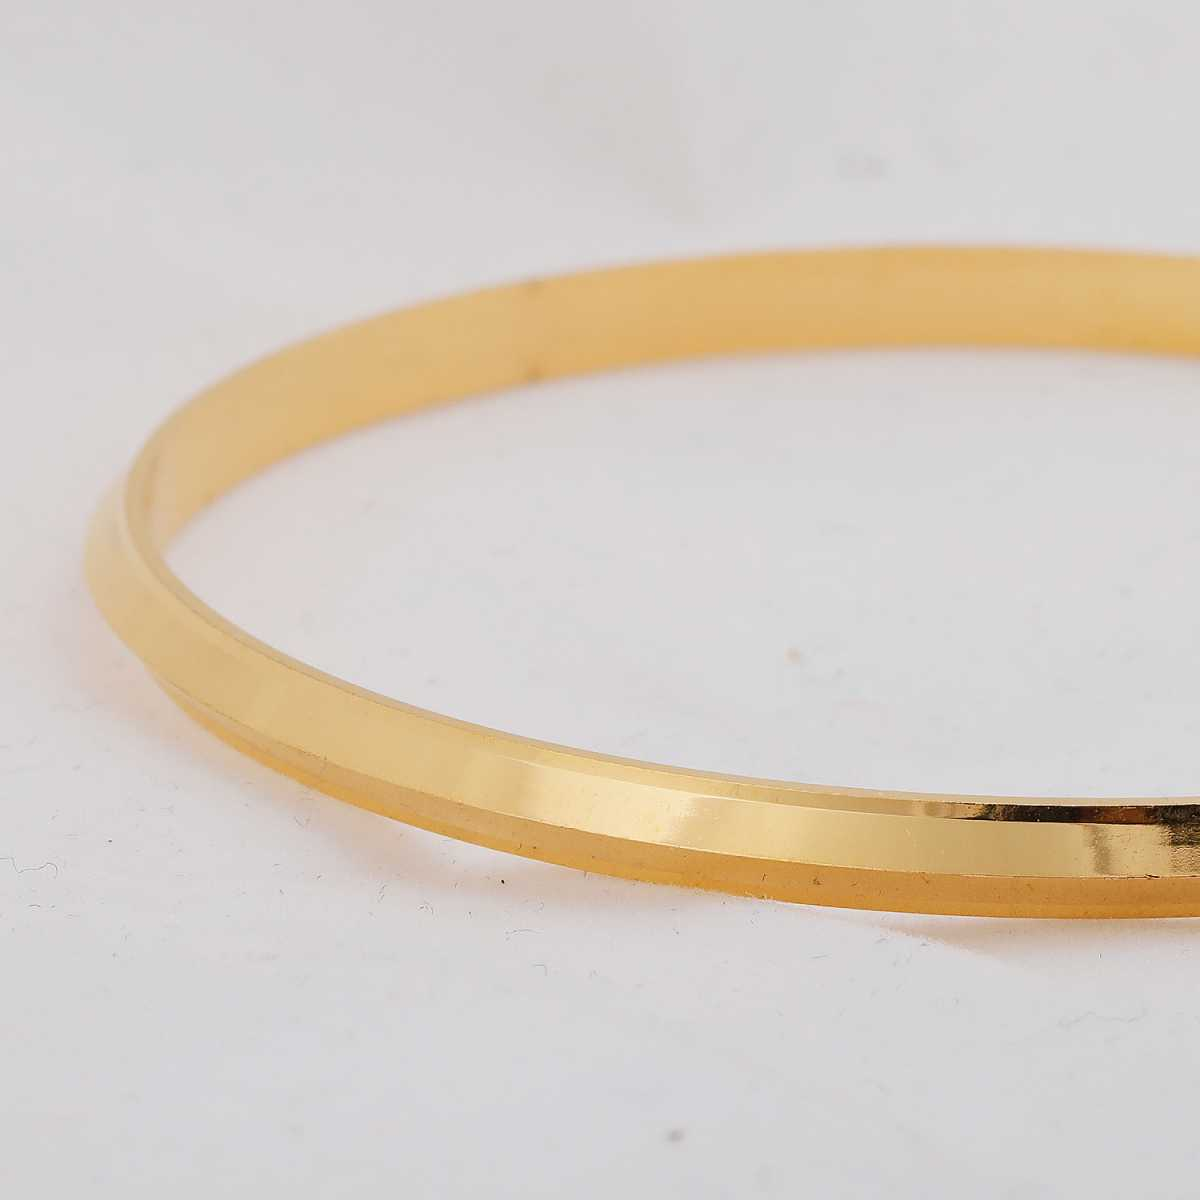 Silver Shine Gold Plated Metal Thin Punjabi Kada Bangle Bracelet For Boys and Mens.